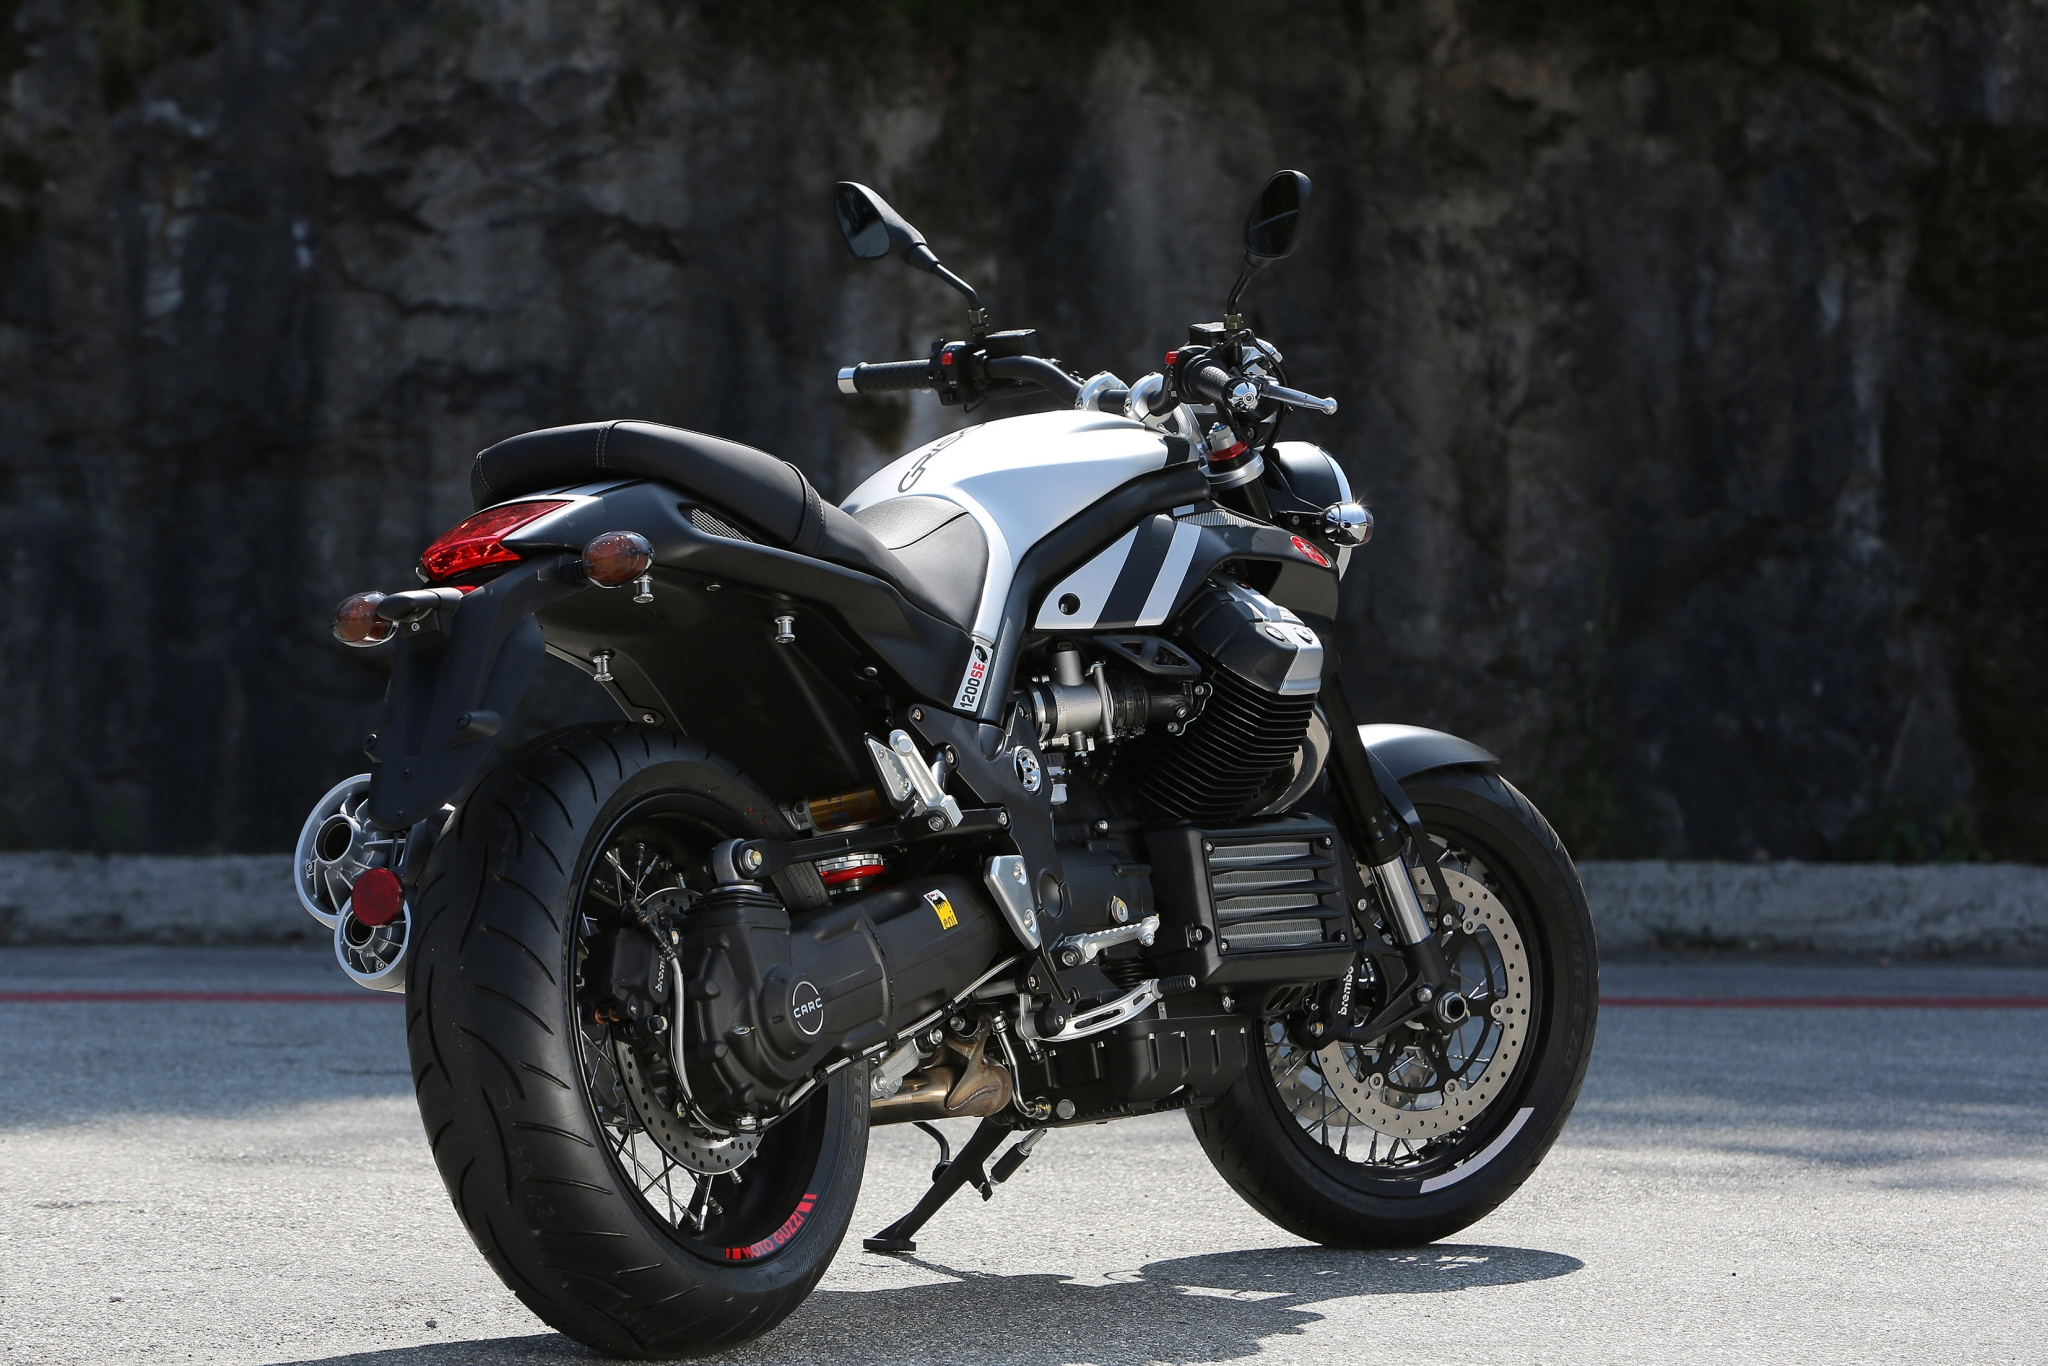 2015 Bmw 750Li >> 2015 Moto Guzzi Griso 8V Special Edition Shows Aesthetic Upgrades - autoevolution